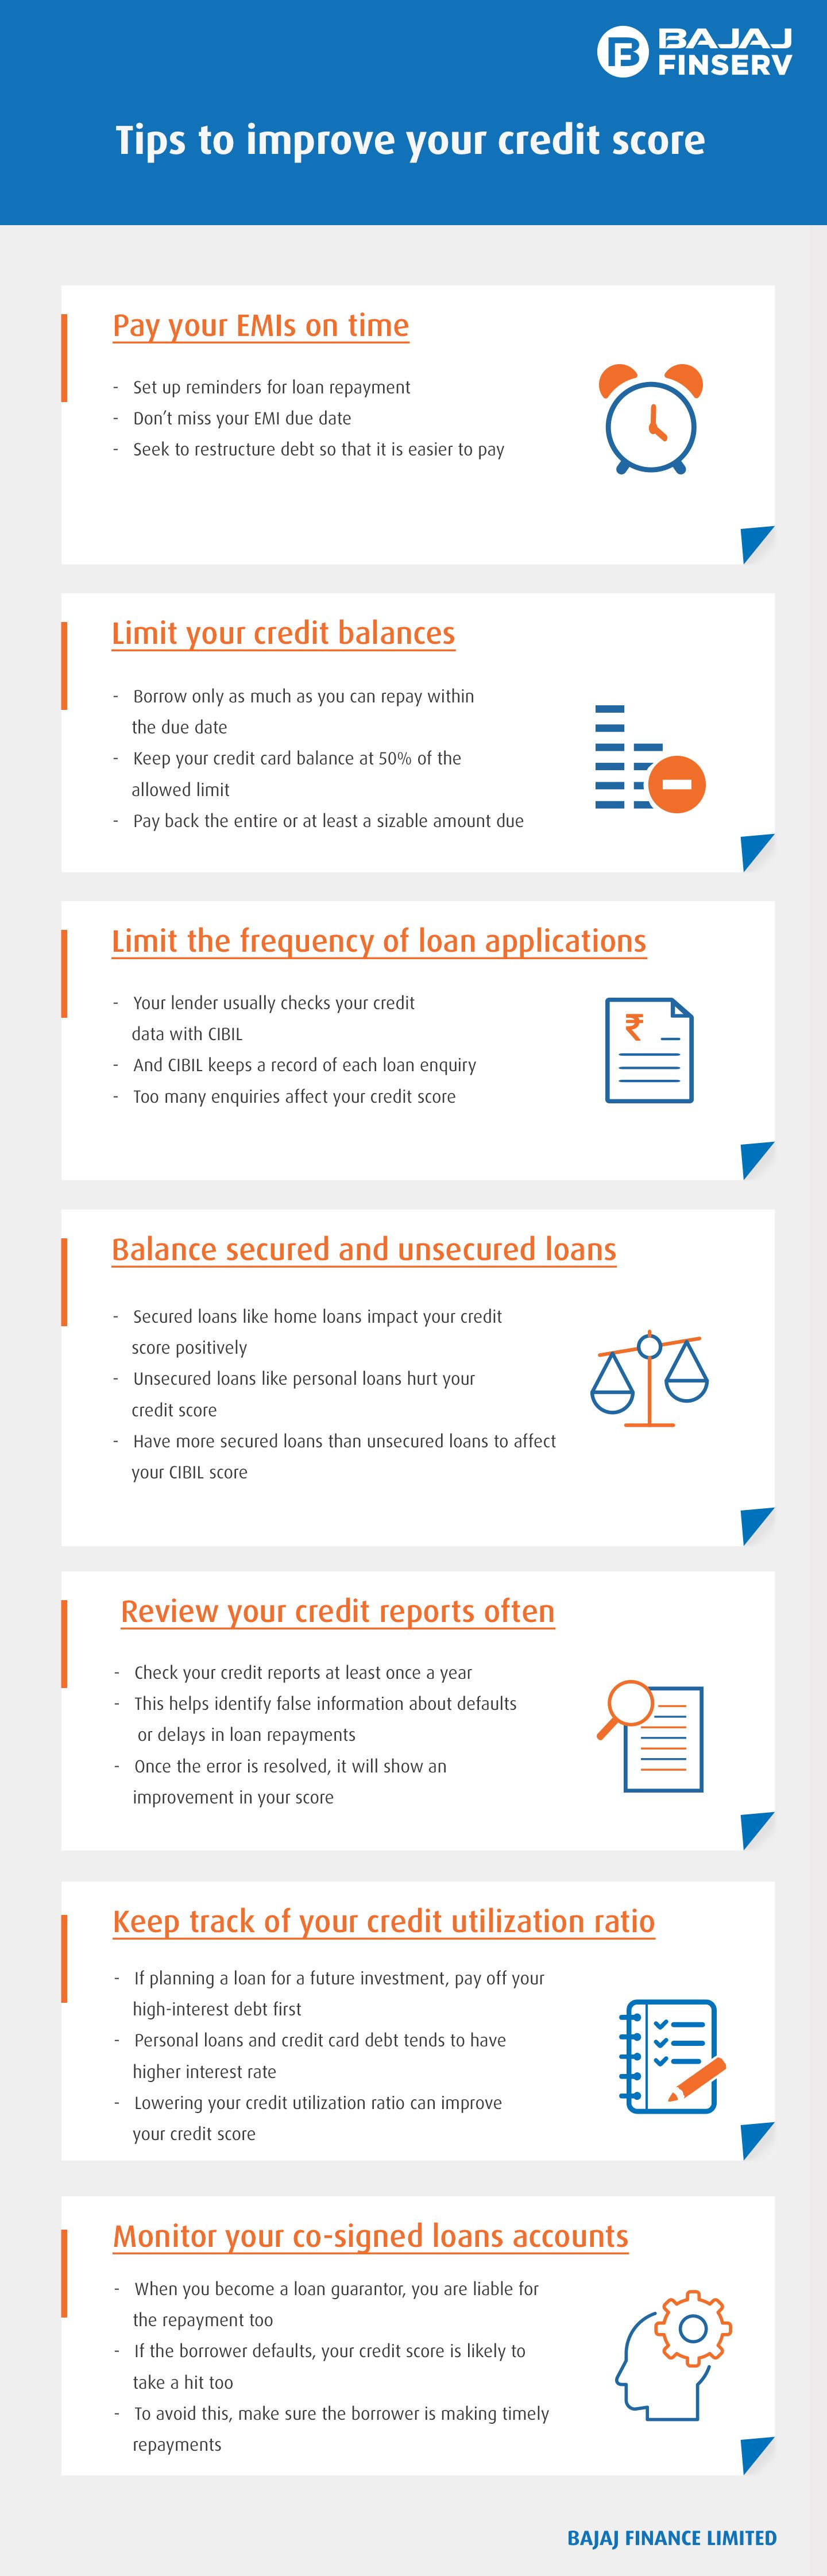 7 Guaranteed Ways To Improve Your Cibil Score Fast Improve Your Credit Score Check And Balance Unsecured Loans